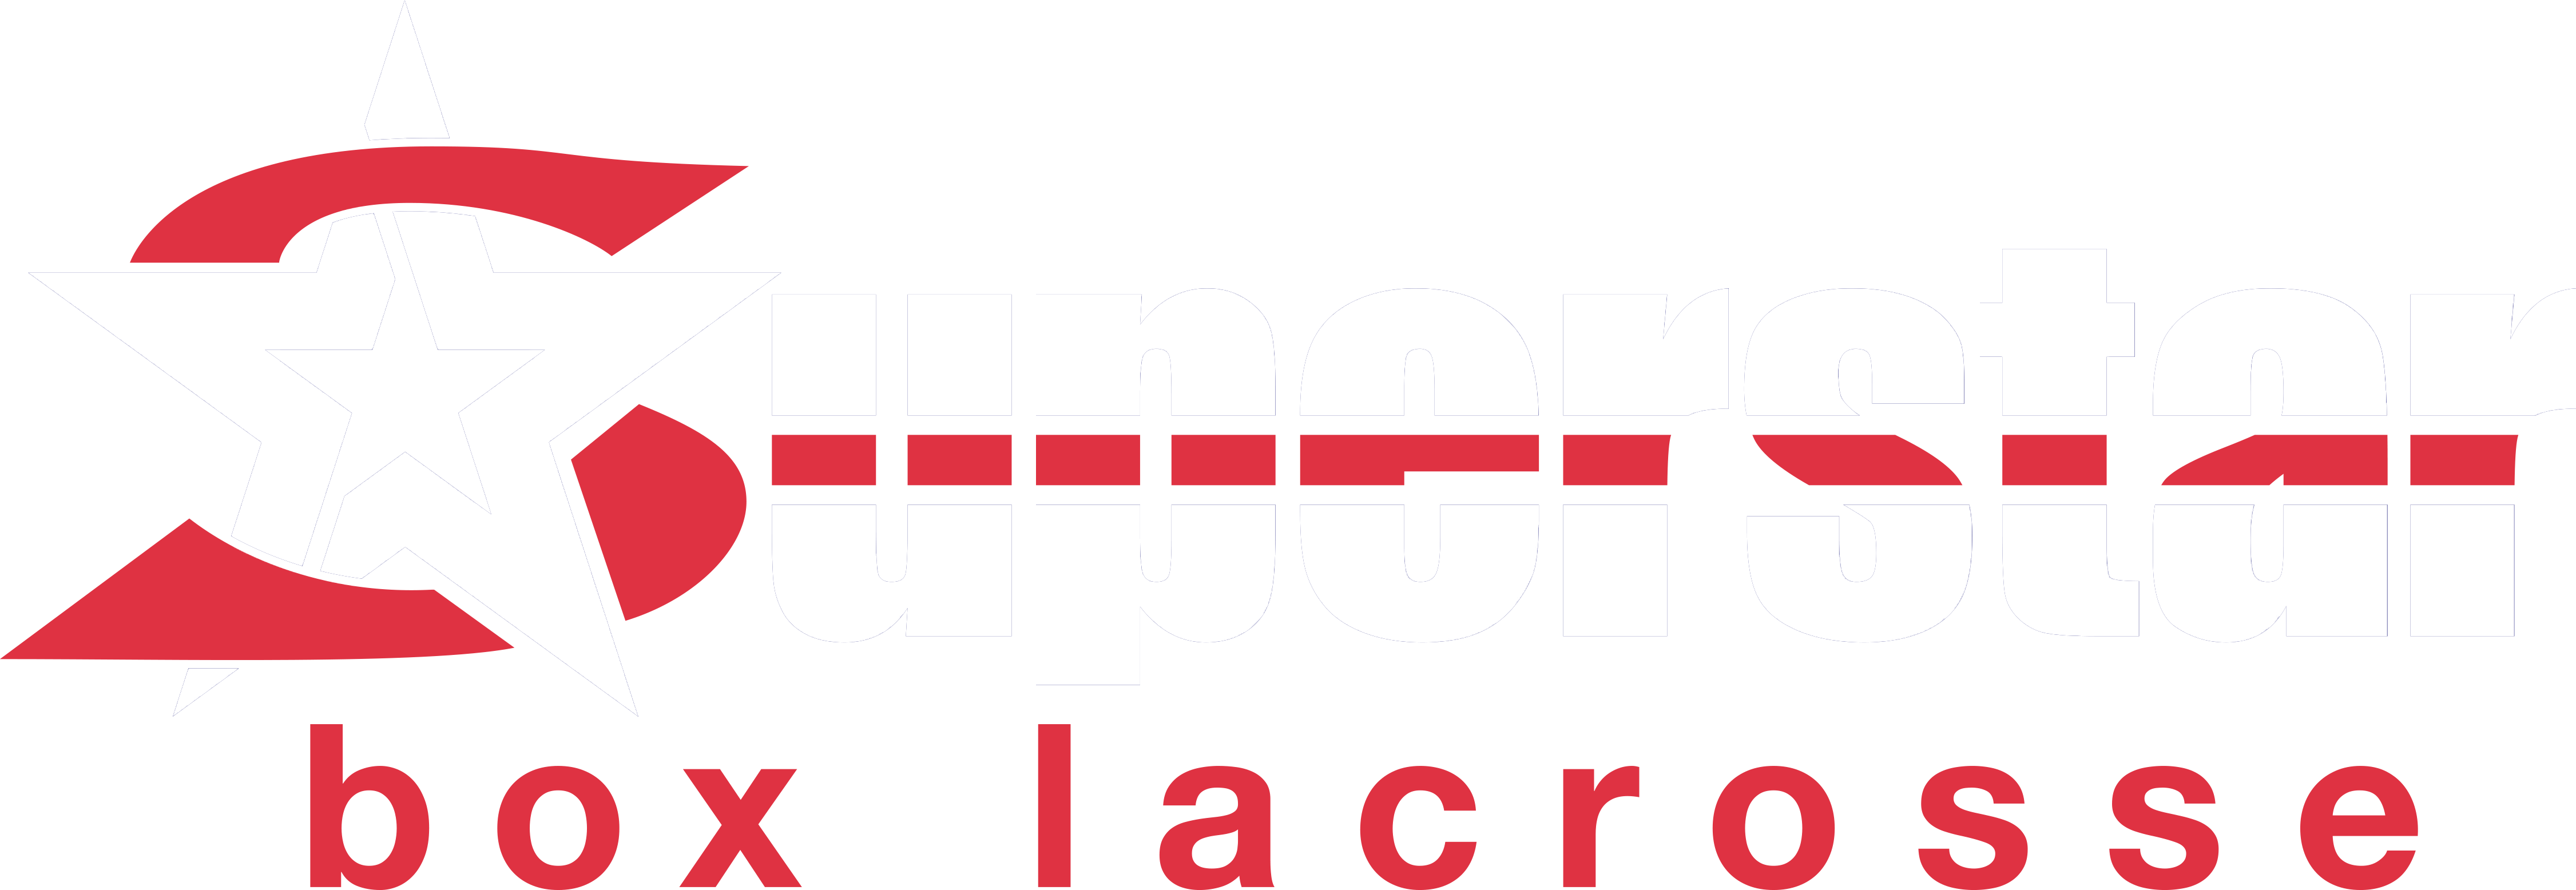 Superstar Box Lacrosse, Lacrosse, Goal, Field